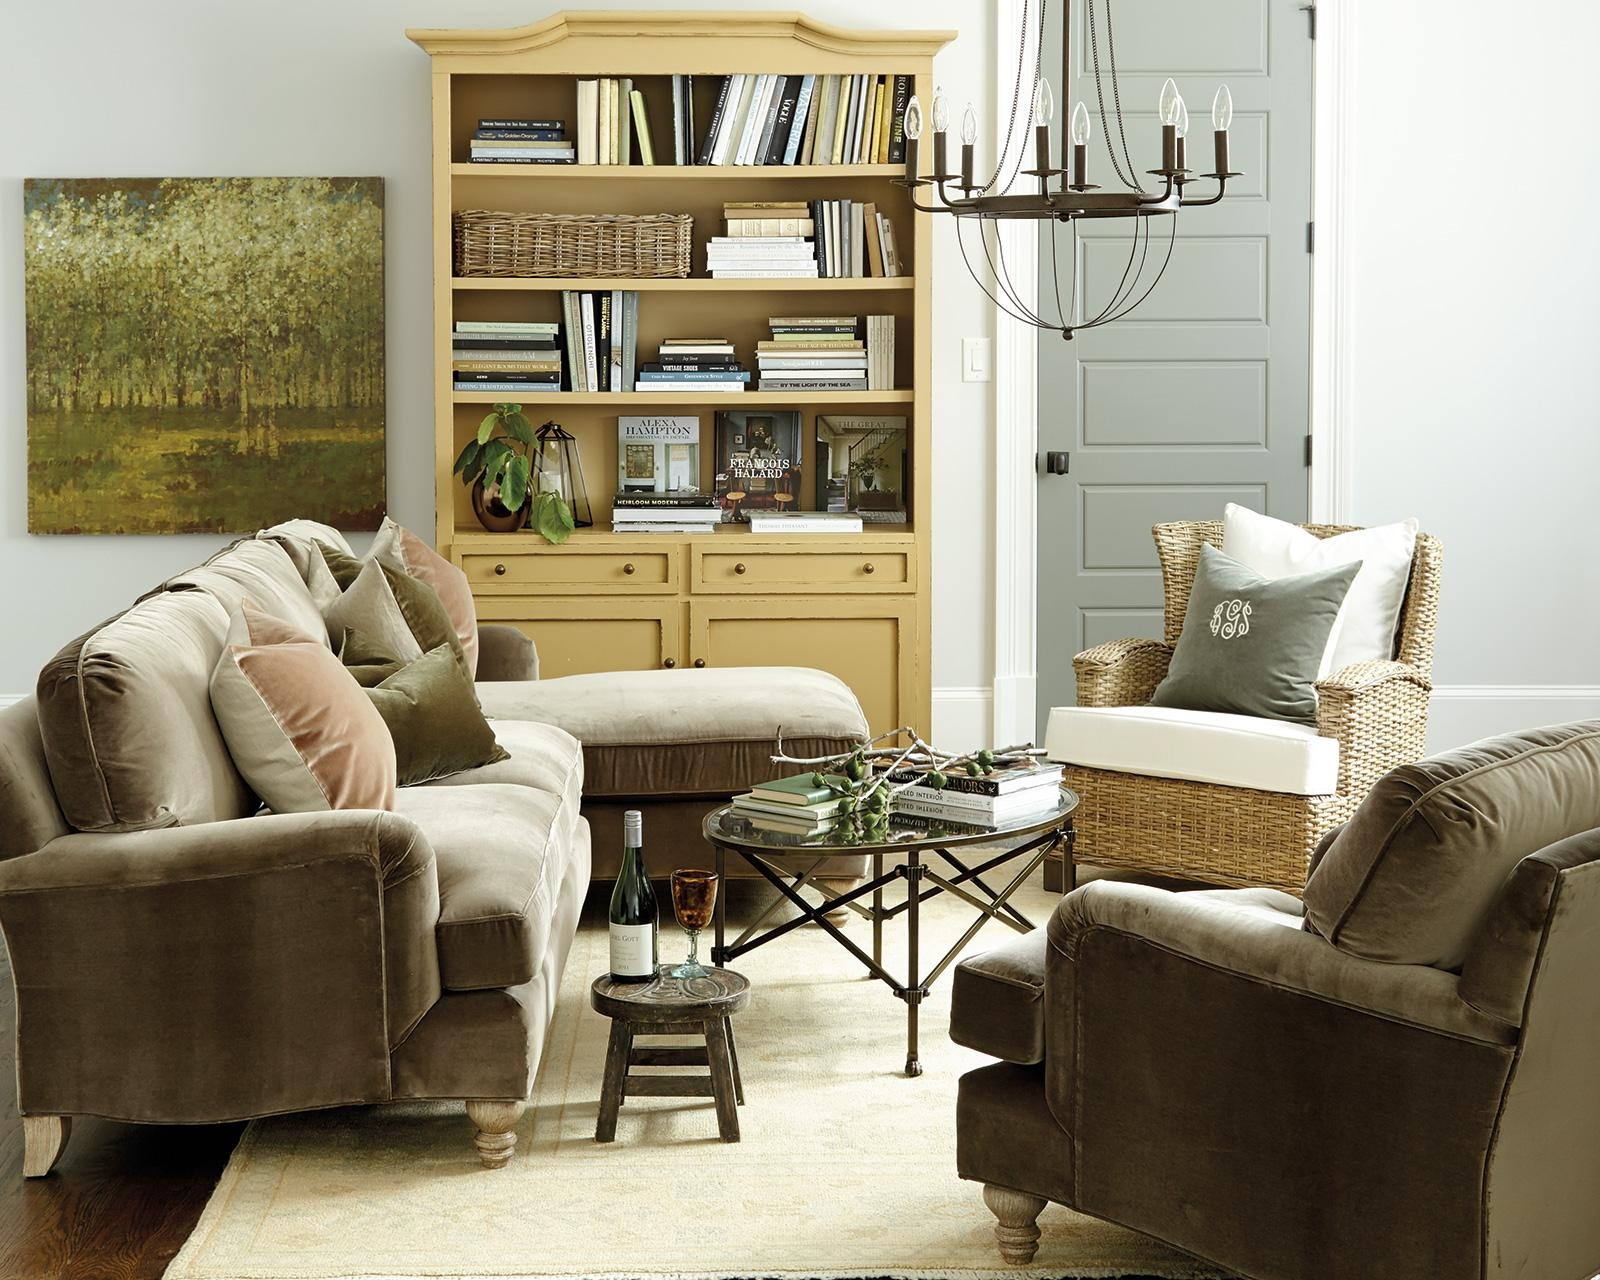 How To Match A Coffee Table To Your Sectional – How To Decorate Within Coffee Table For Sectional Sofa (View 12 of 15)